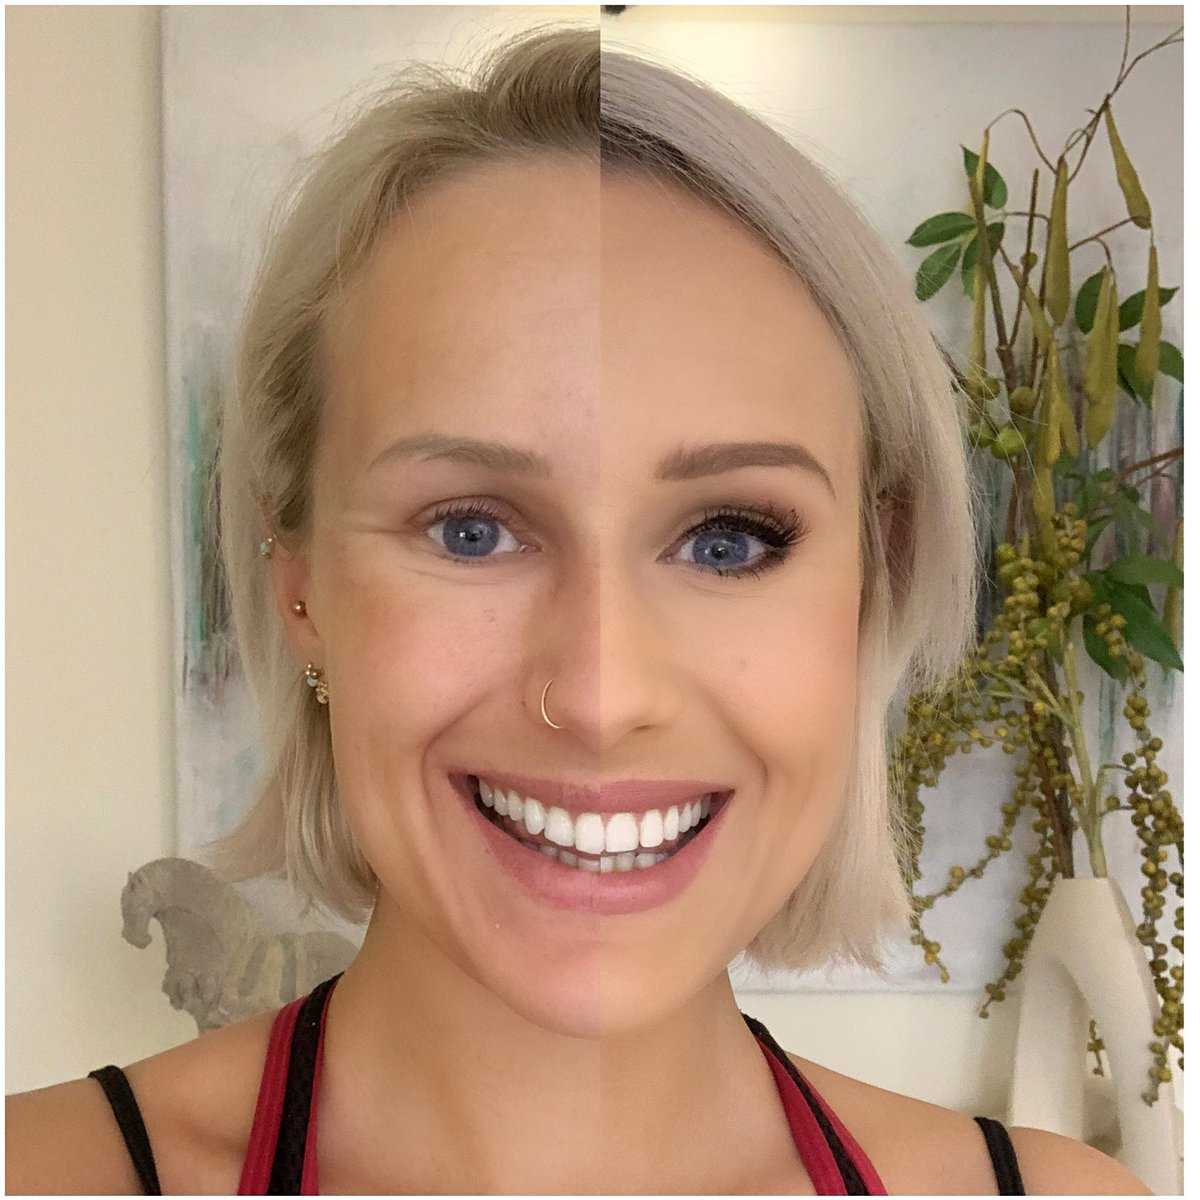 Before and after of a beautiful natural makeup  #makeup #makeupartist #makeupaddict #makeupaddicted #makeuplover #makeuptutorial #naturalmakeup #naturalgirl #naturalbeauty #beforeandafter #beforeafter #beforeandafterpics pic.twitter.com/4rcOPagDDq